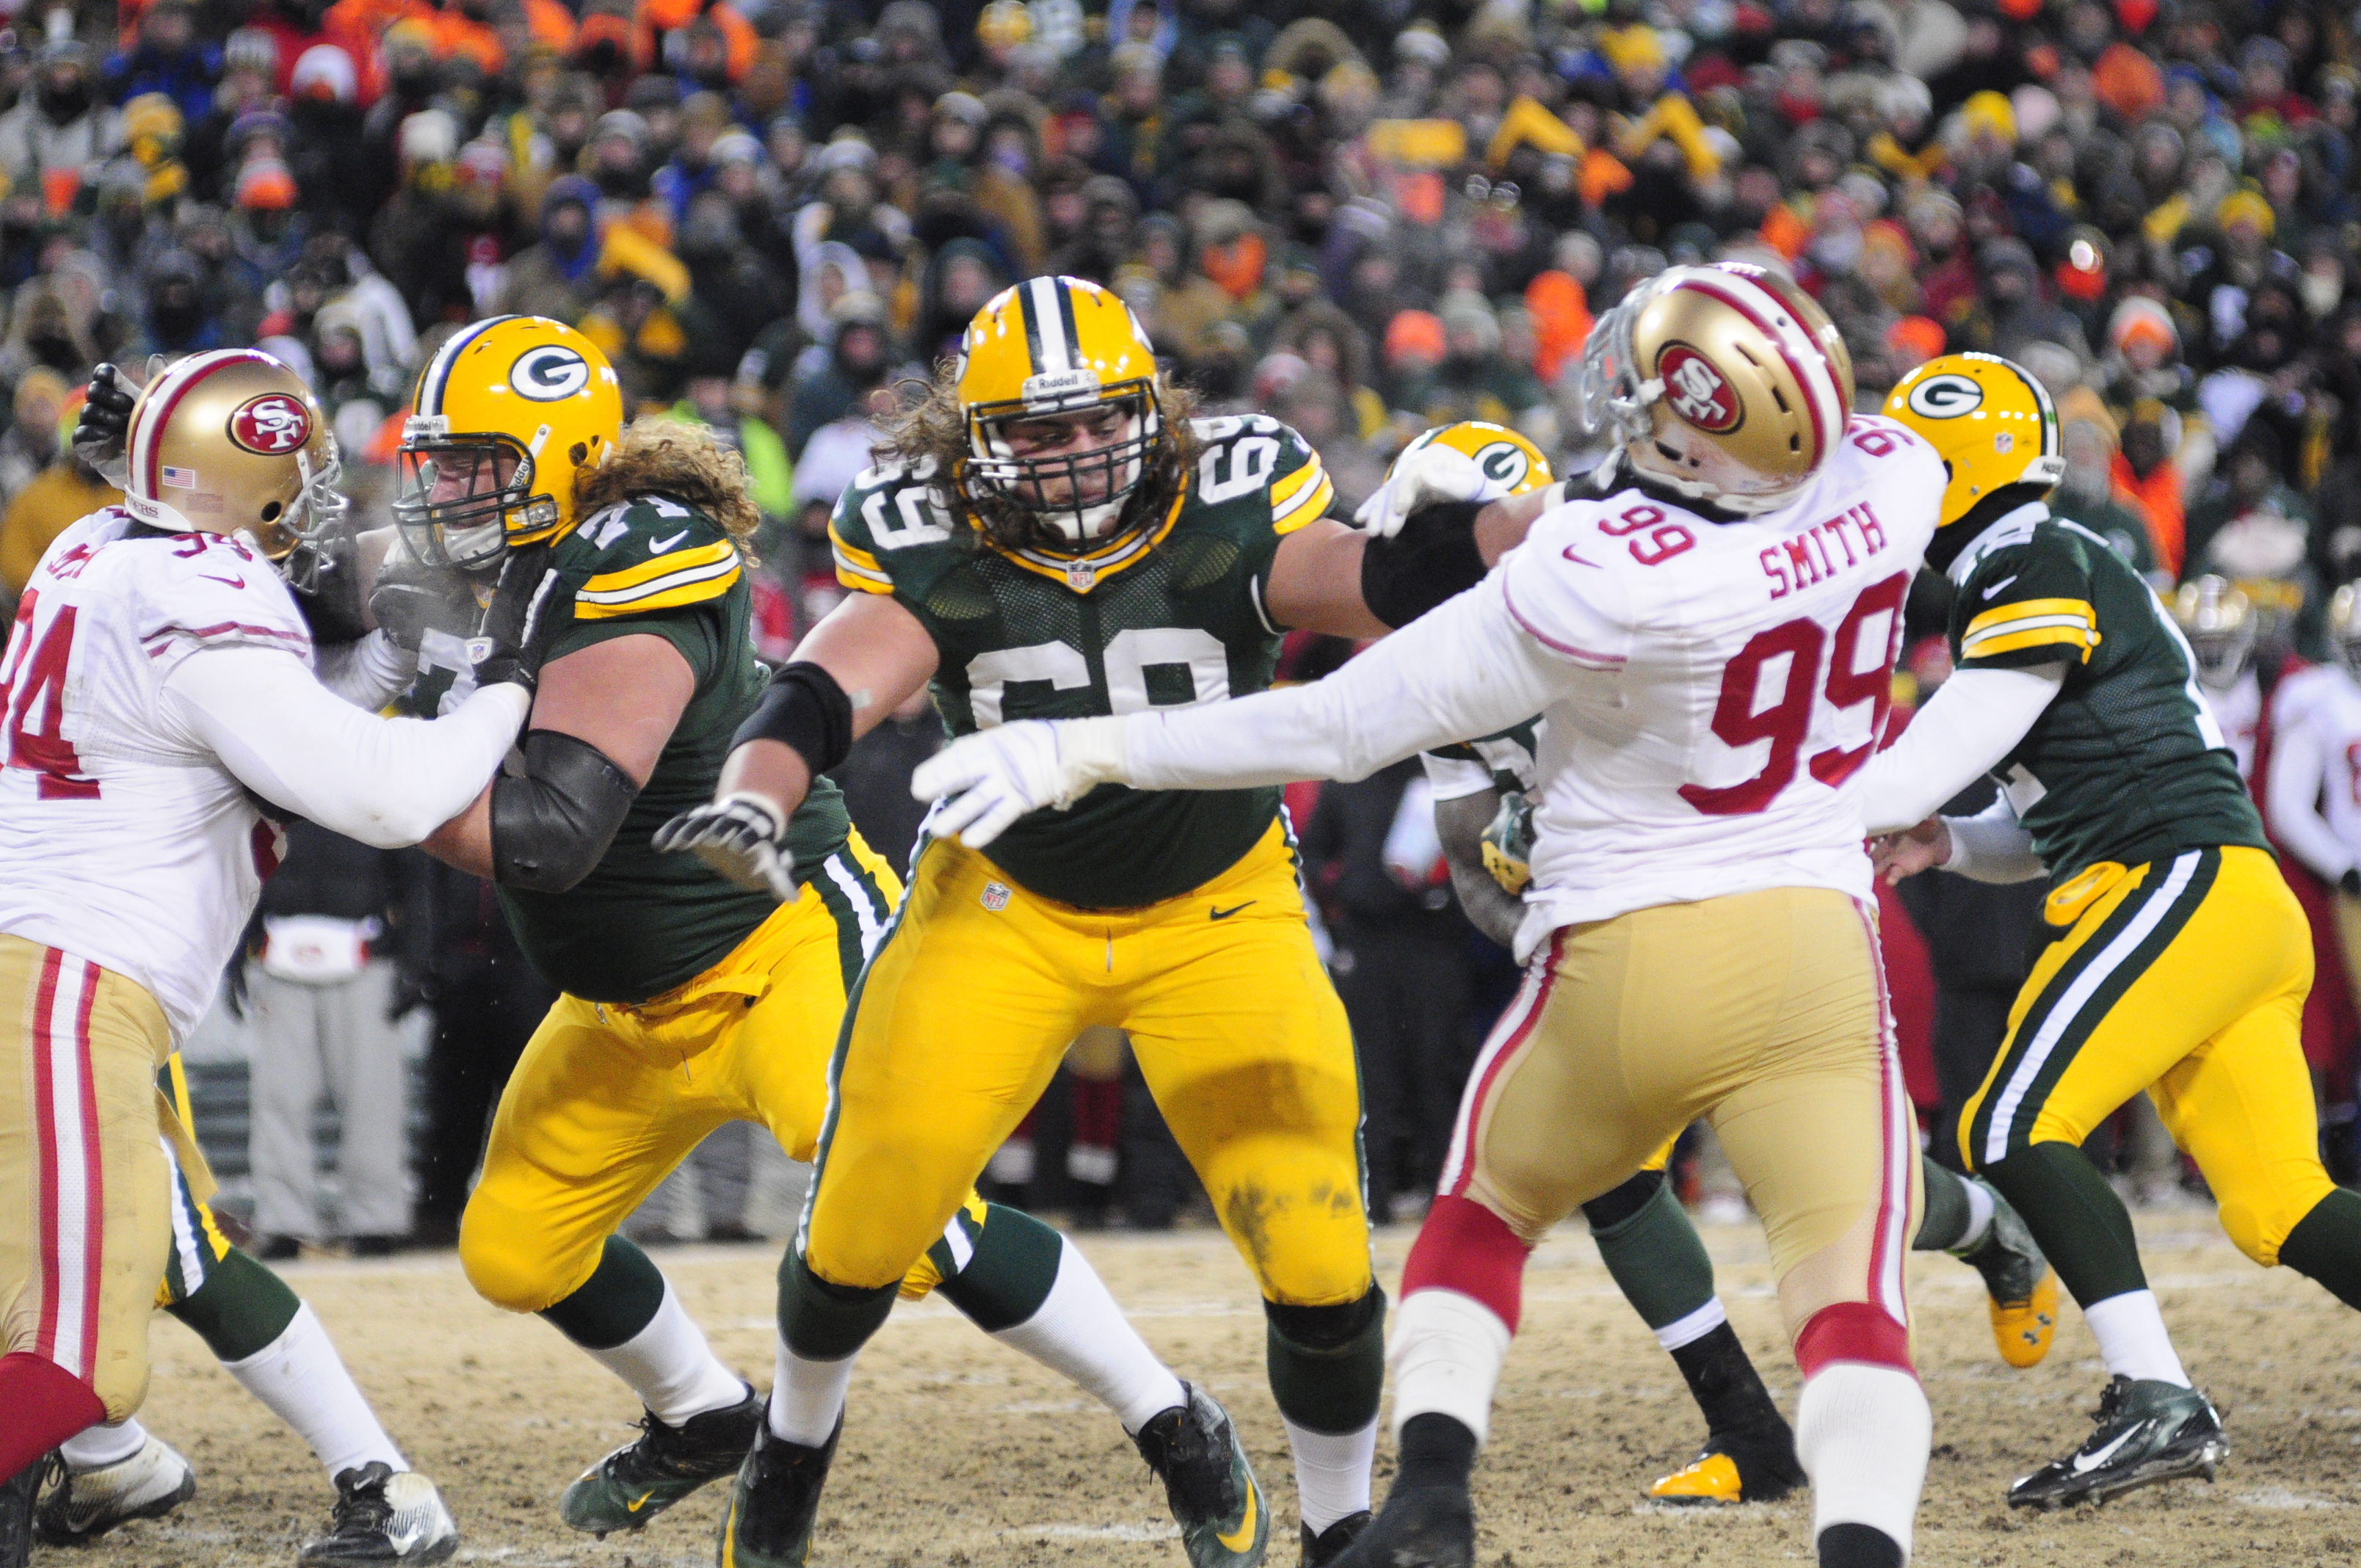 Daviid Bakhtiari continues to protect the blind side